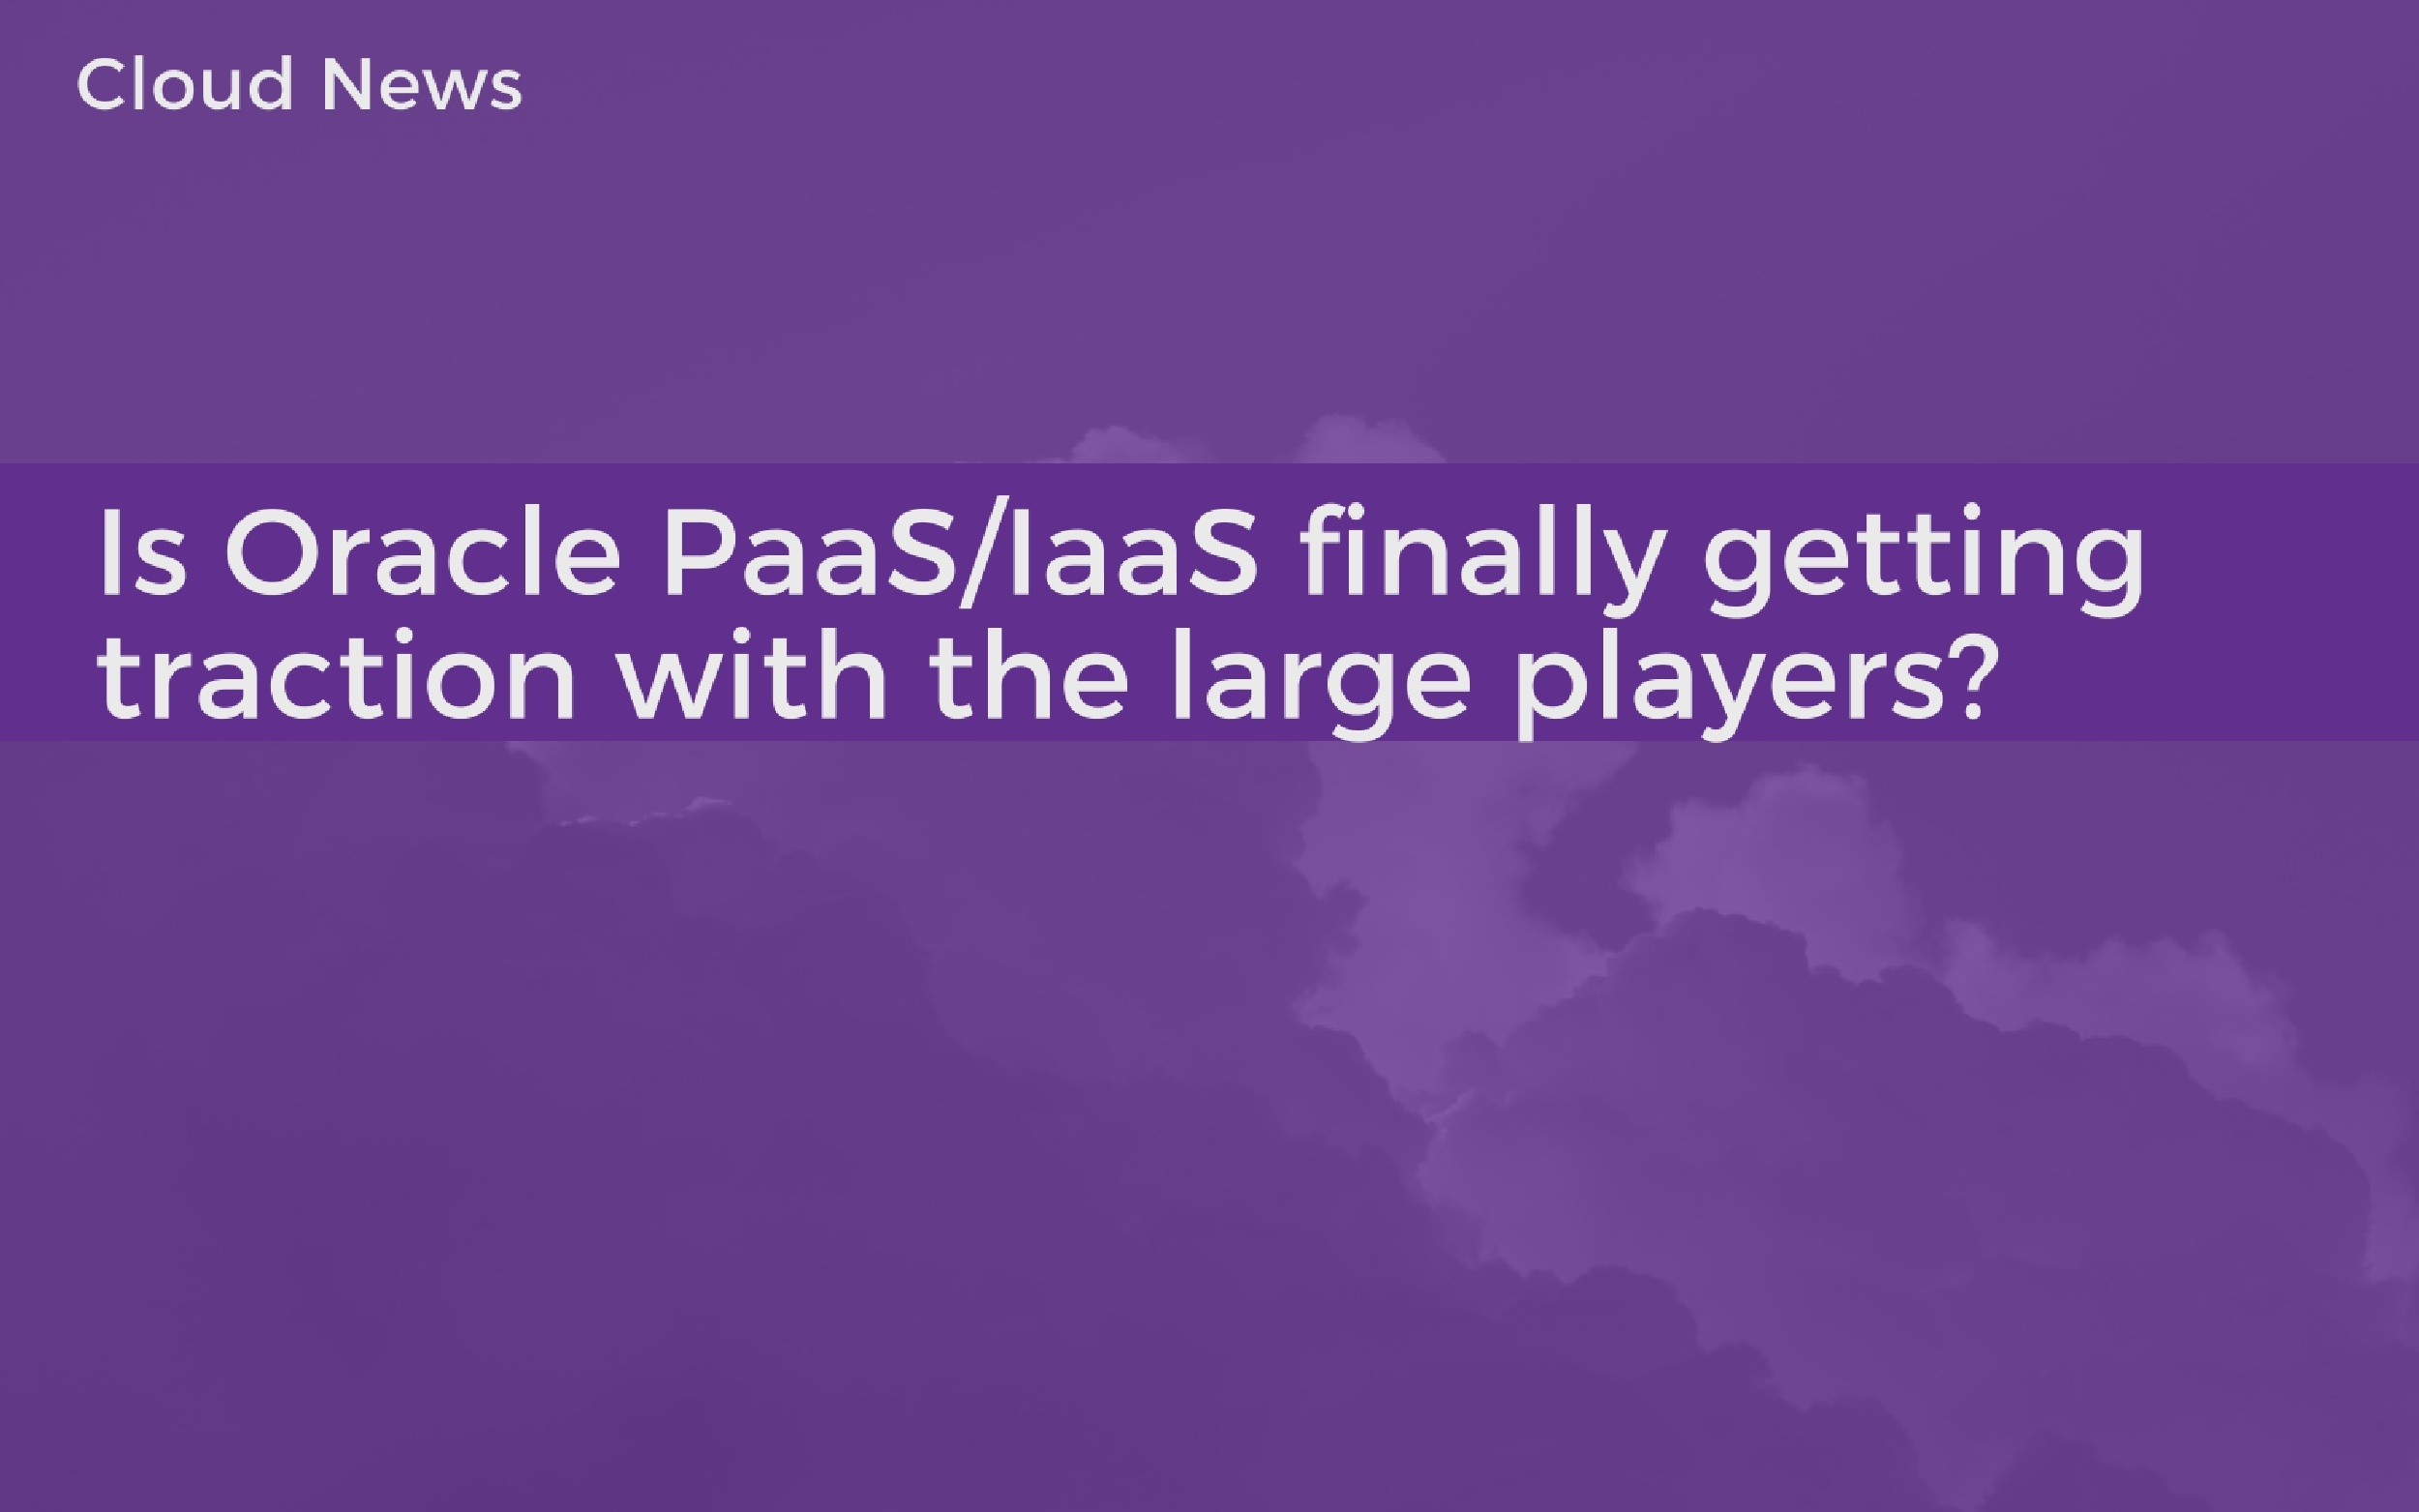 Is Oracle PaaS/IaaS finally getting traction with large players